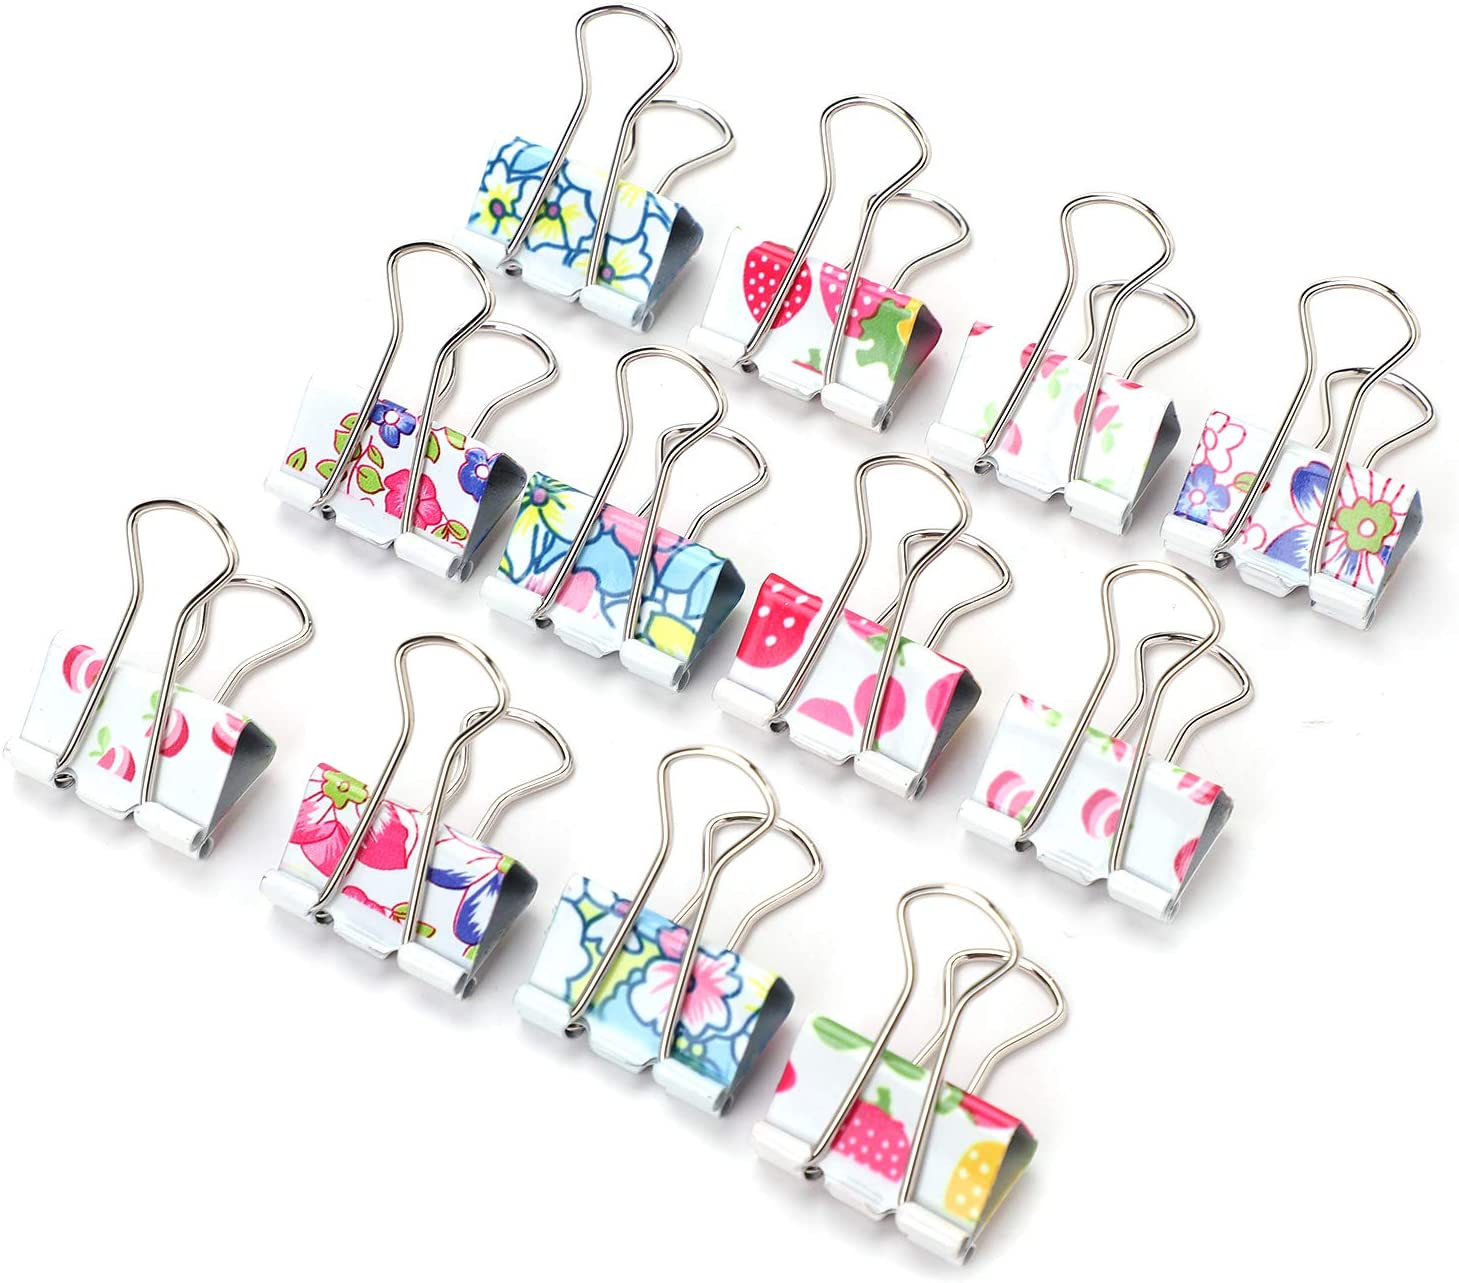 24 Pack Colorful Printed Binder Clips Clamps C Now free shipping Inexpensive Paper Metal